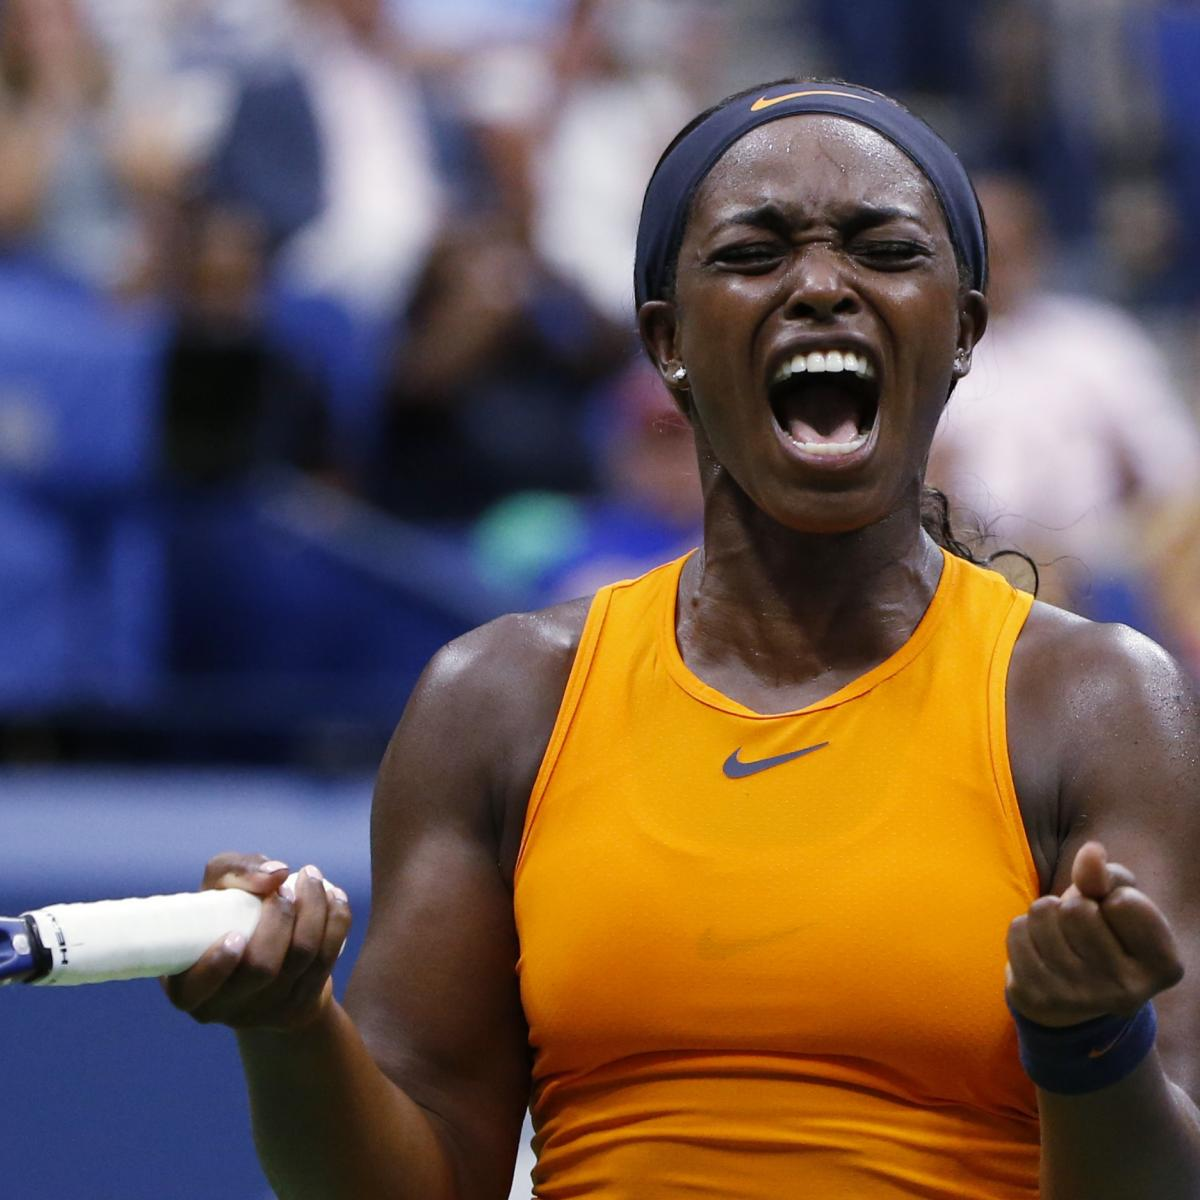 us open tennis 2018: tv schedule, start times for sunday night draw